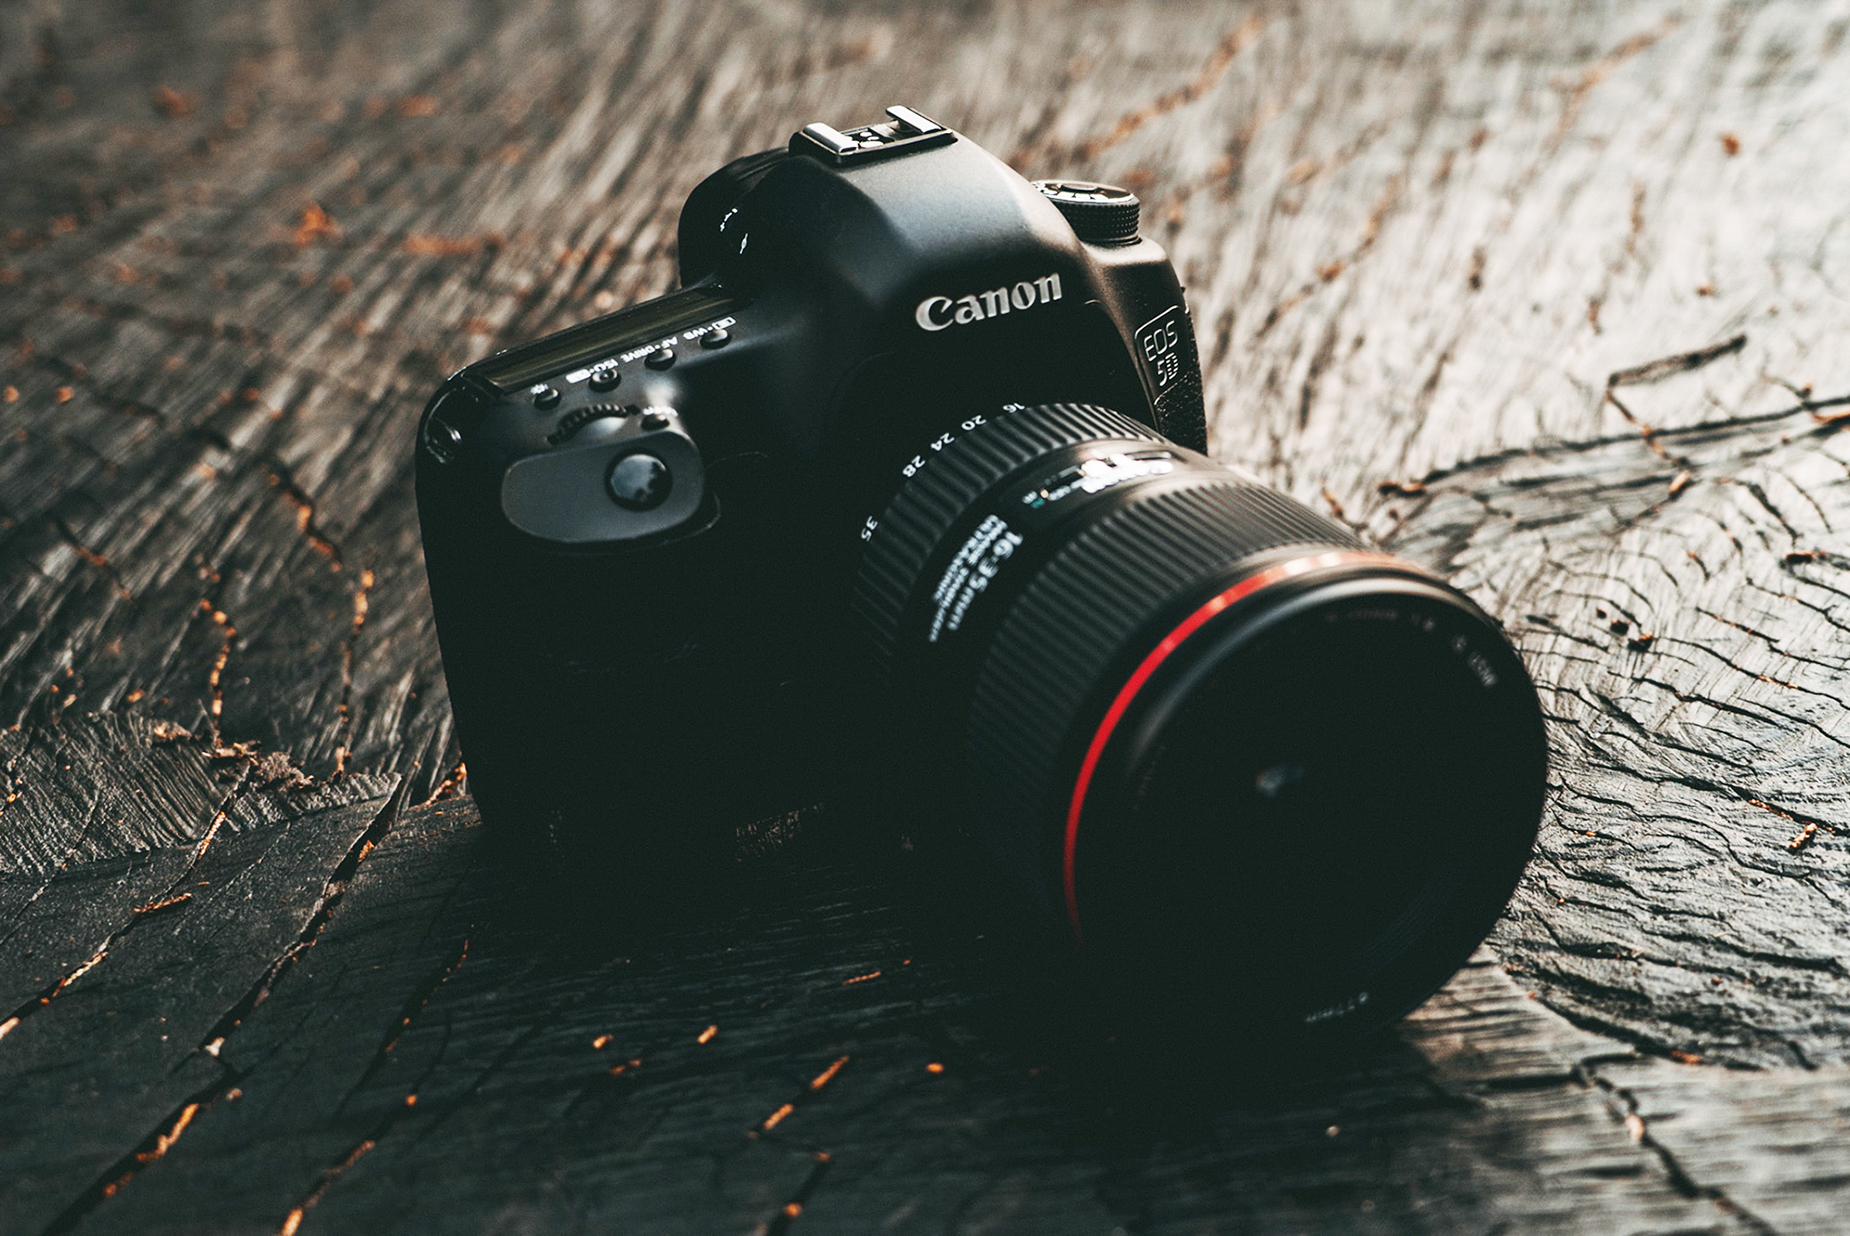 What kit do I need for sensational photography?